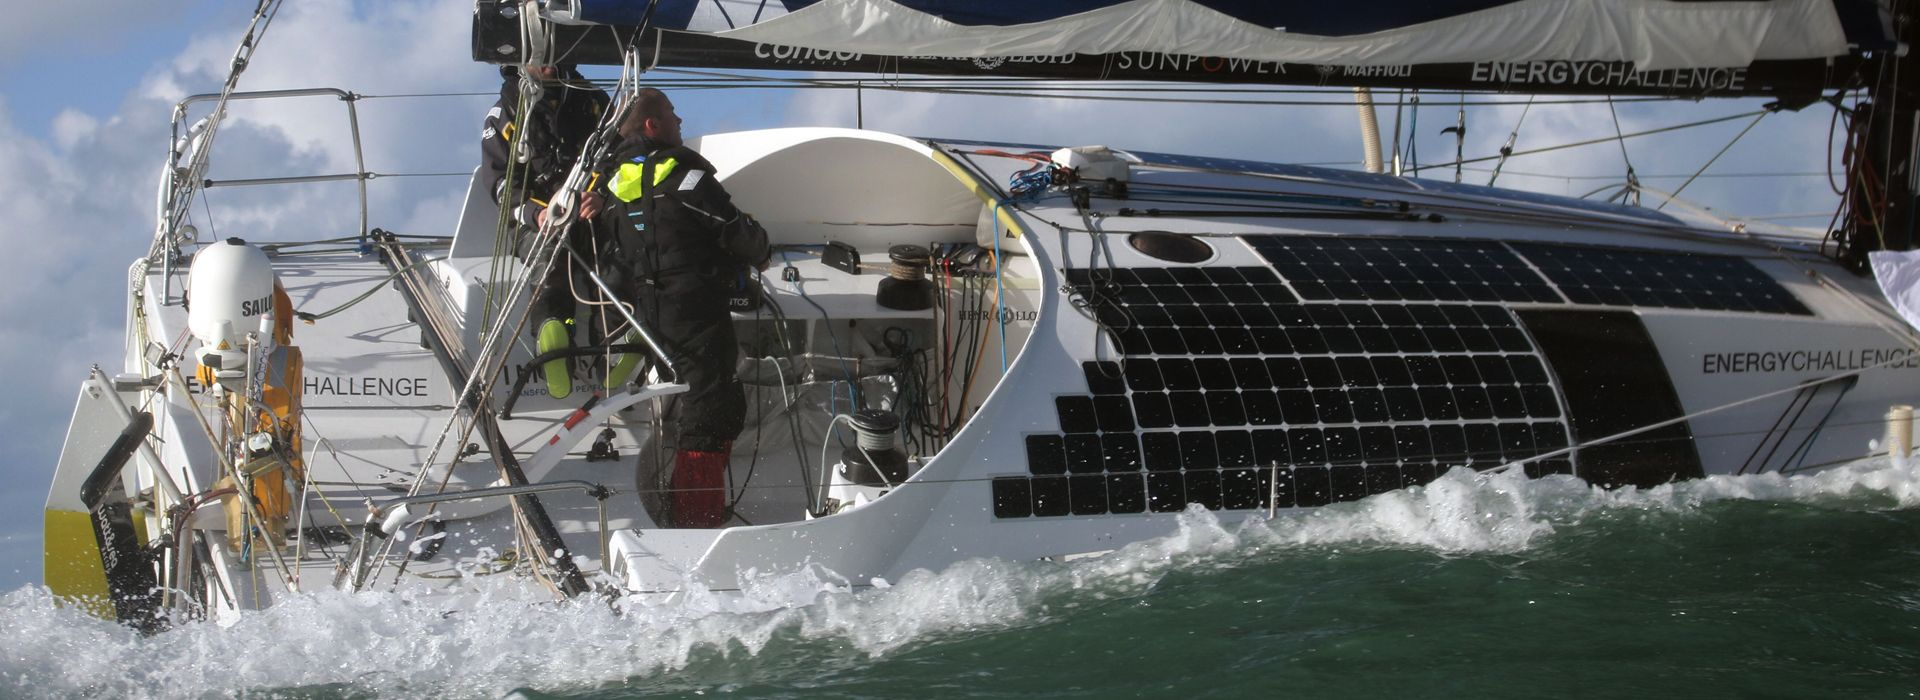 Phil Sharp racing a solar-powered boat